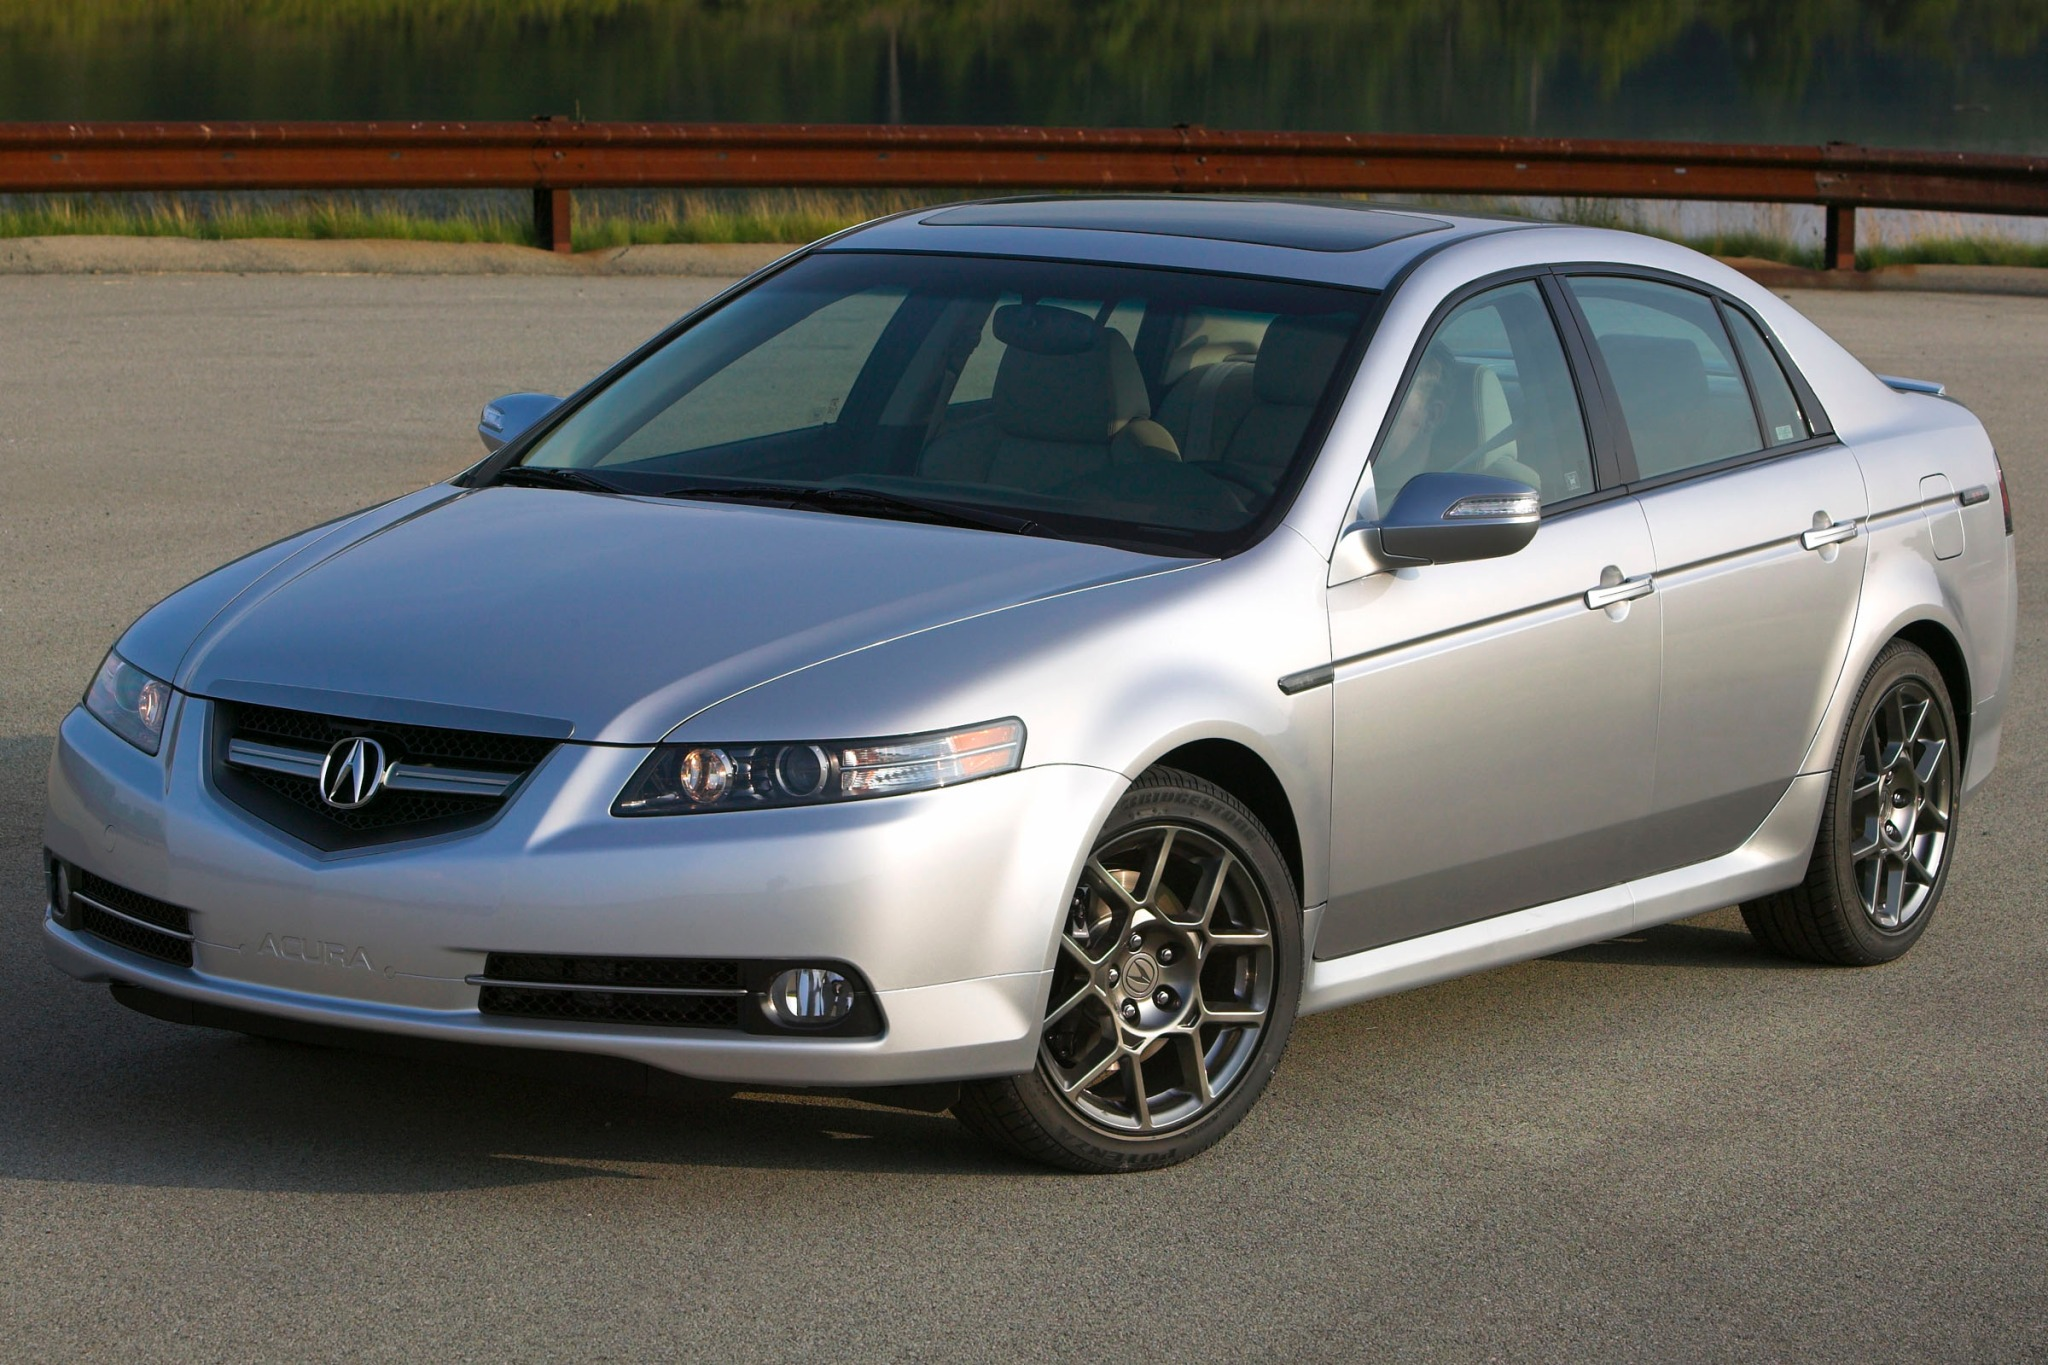 Maintenance Schedule For 2007 Acura TL